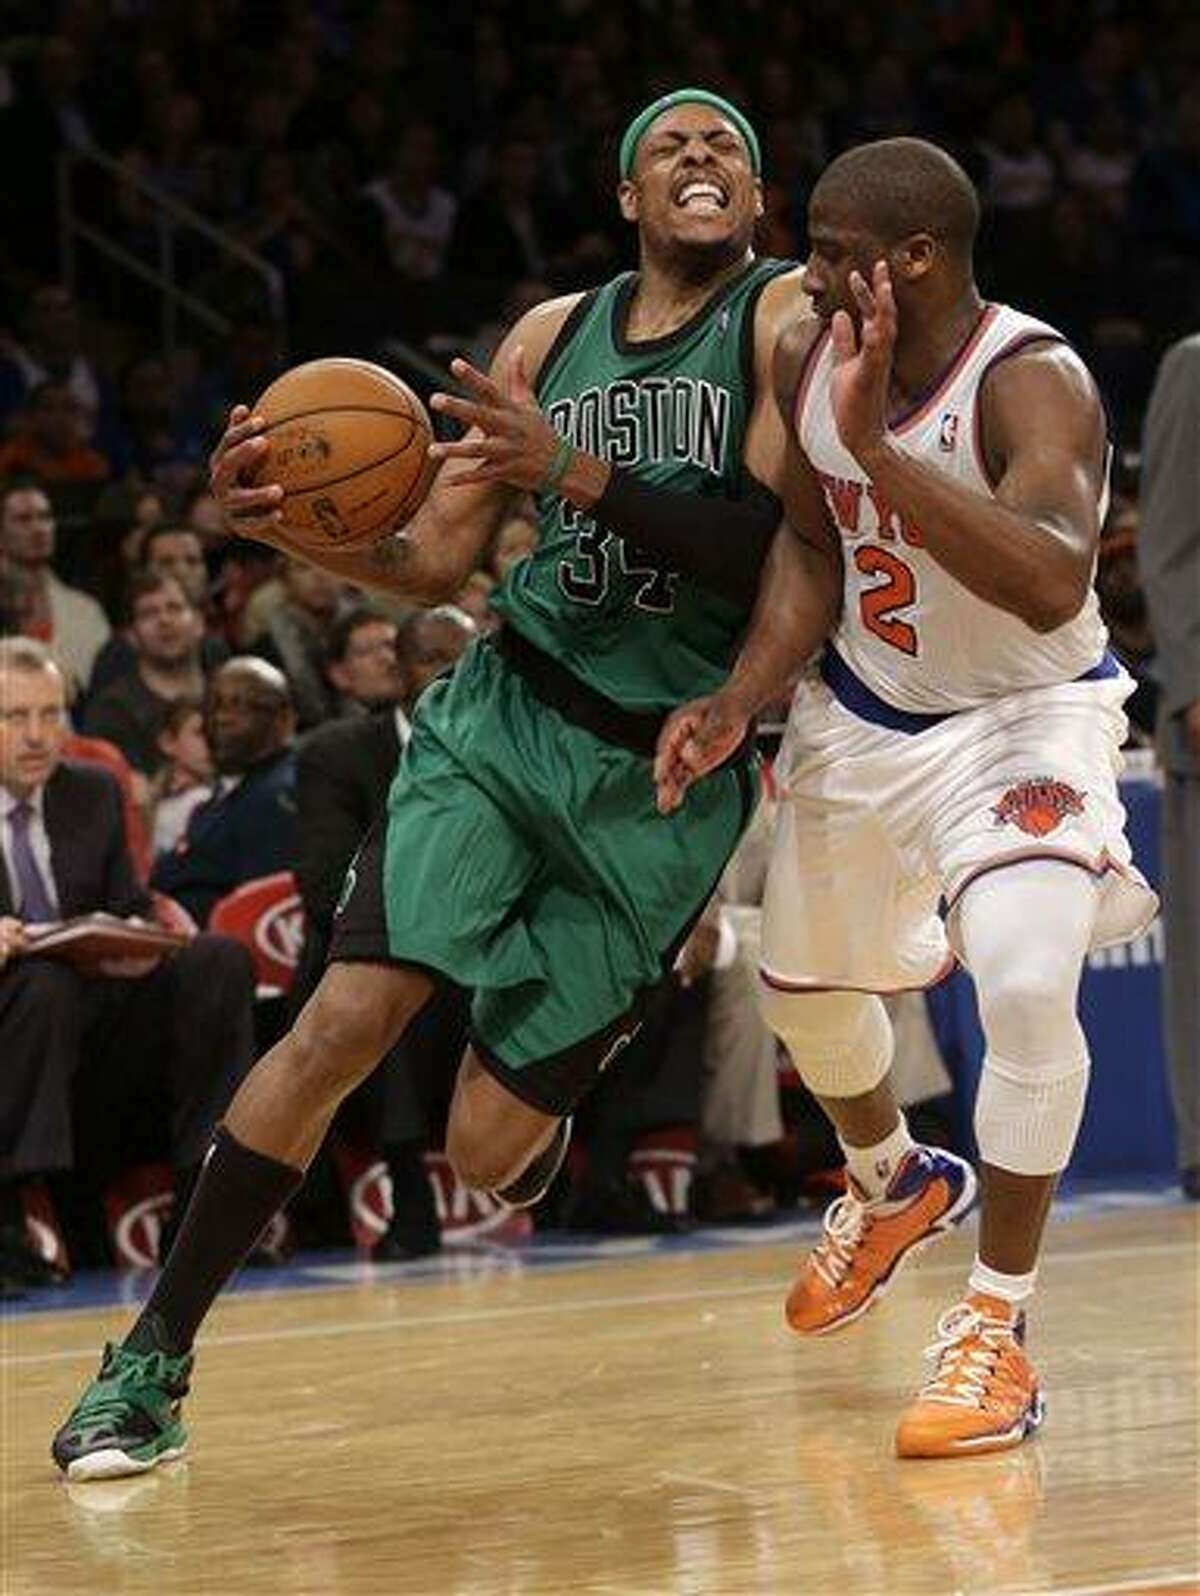 Boston Celtics' Paul Pierce, left, is fouled by New York Knicks' Raymond Felton during the second half of the NBA basketball game at Madison Square Garden Sunday, March 31, 2013 in New York. The Knicks beat the Celtics 108-89. (AP Photo/Seth Wenig)